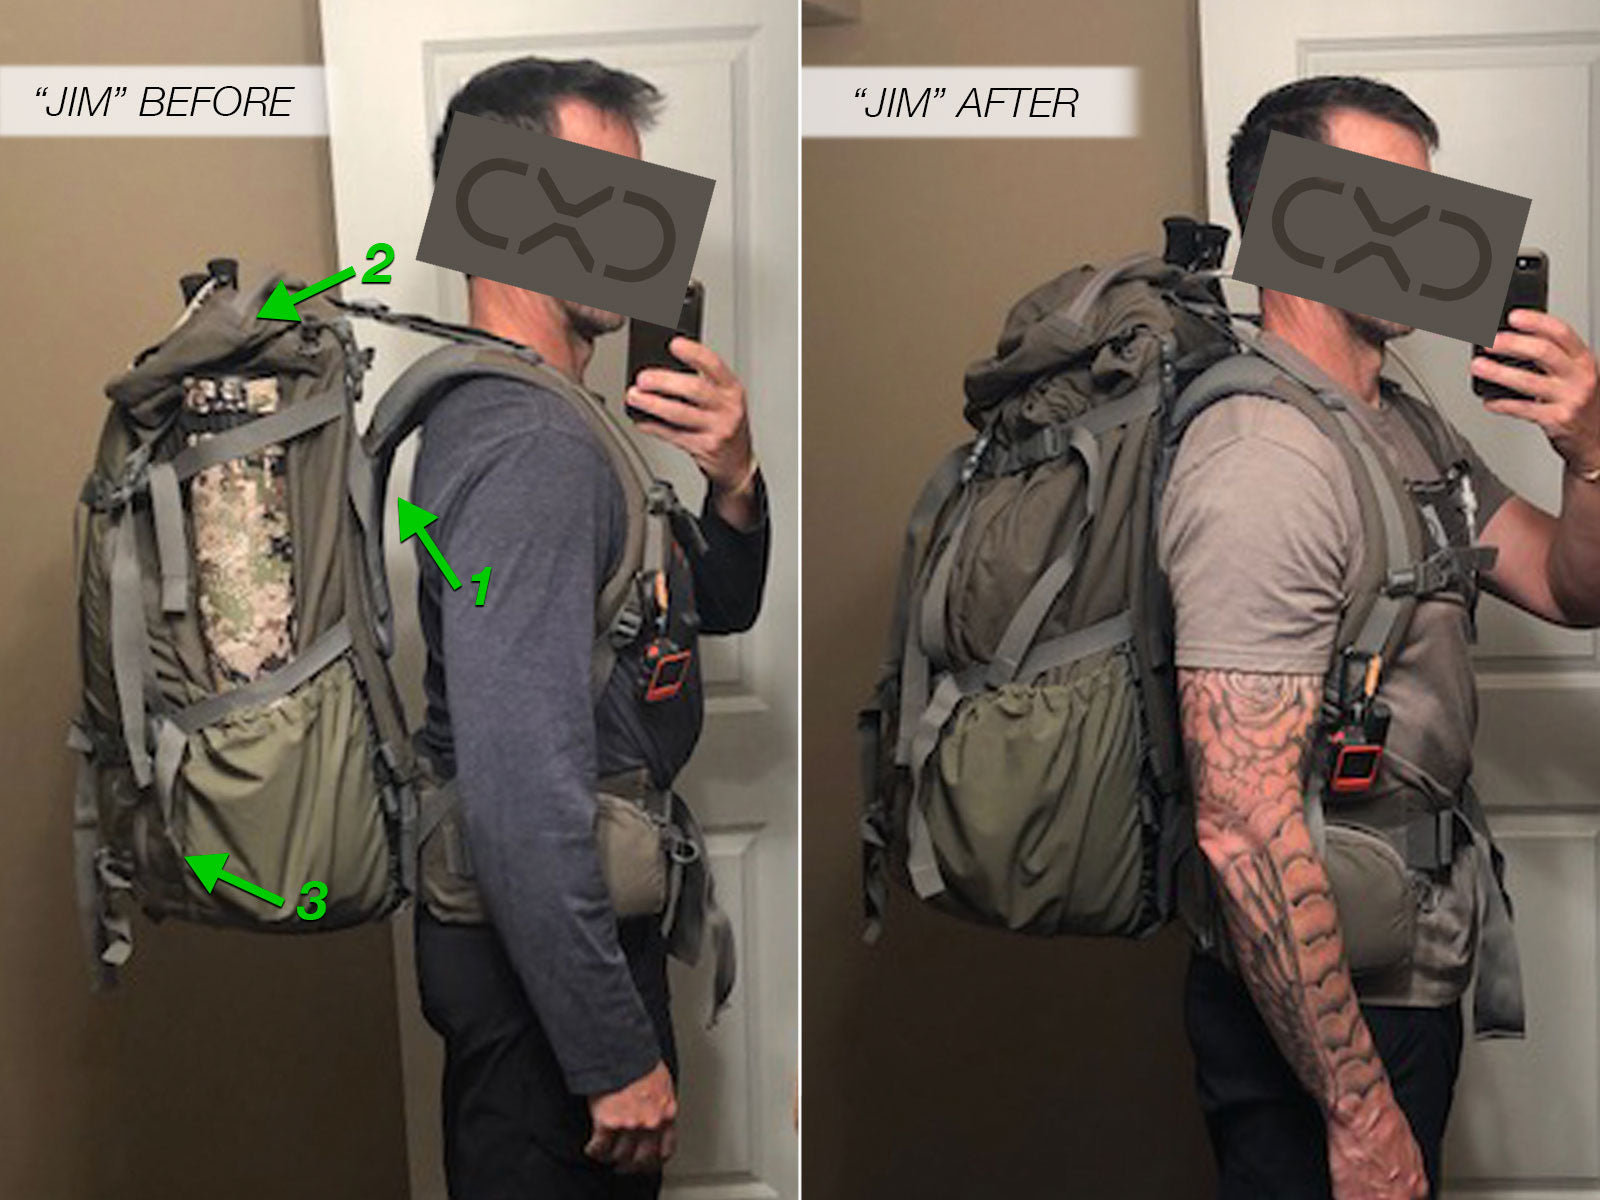 Jim's Pack Fitting Photos